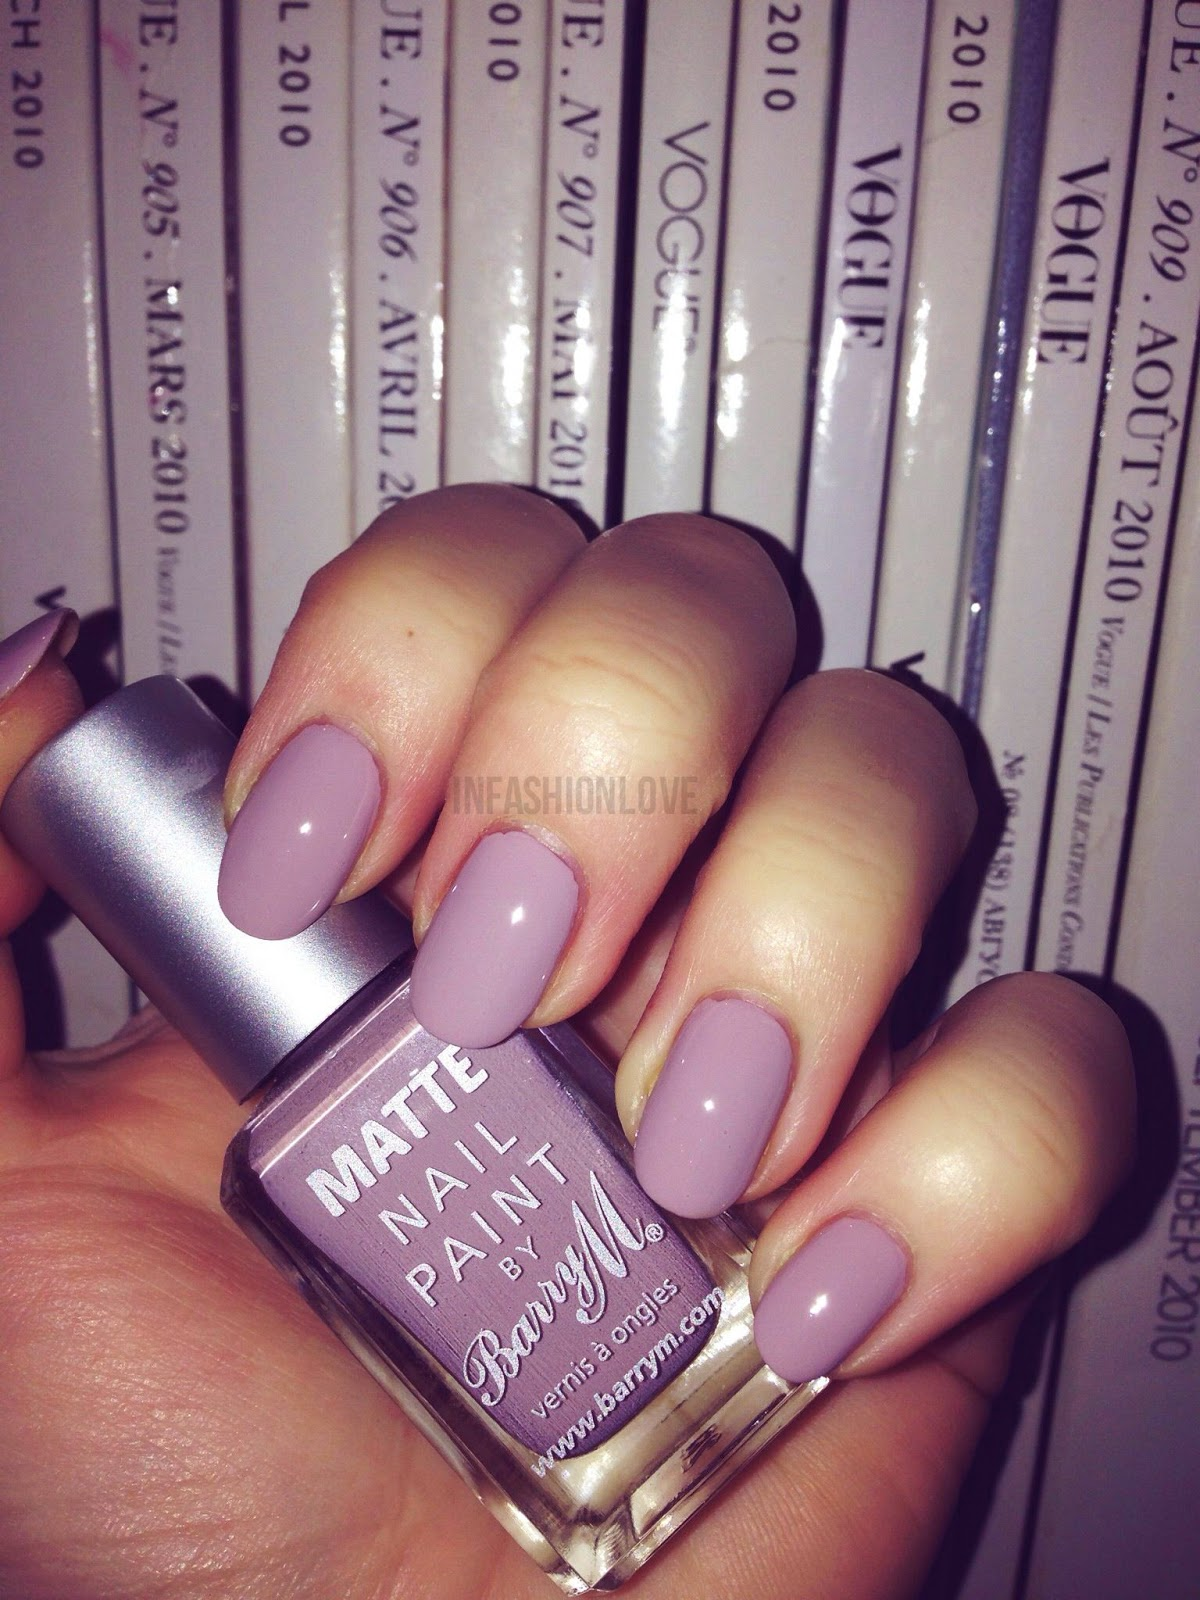 INFASHIONLOVE.COM: BarryM Matte Nailpolish in Vanilla + Topcoat!